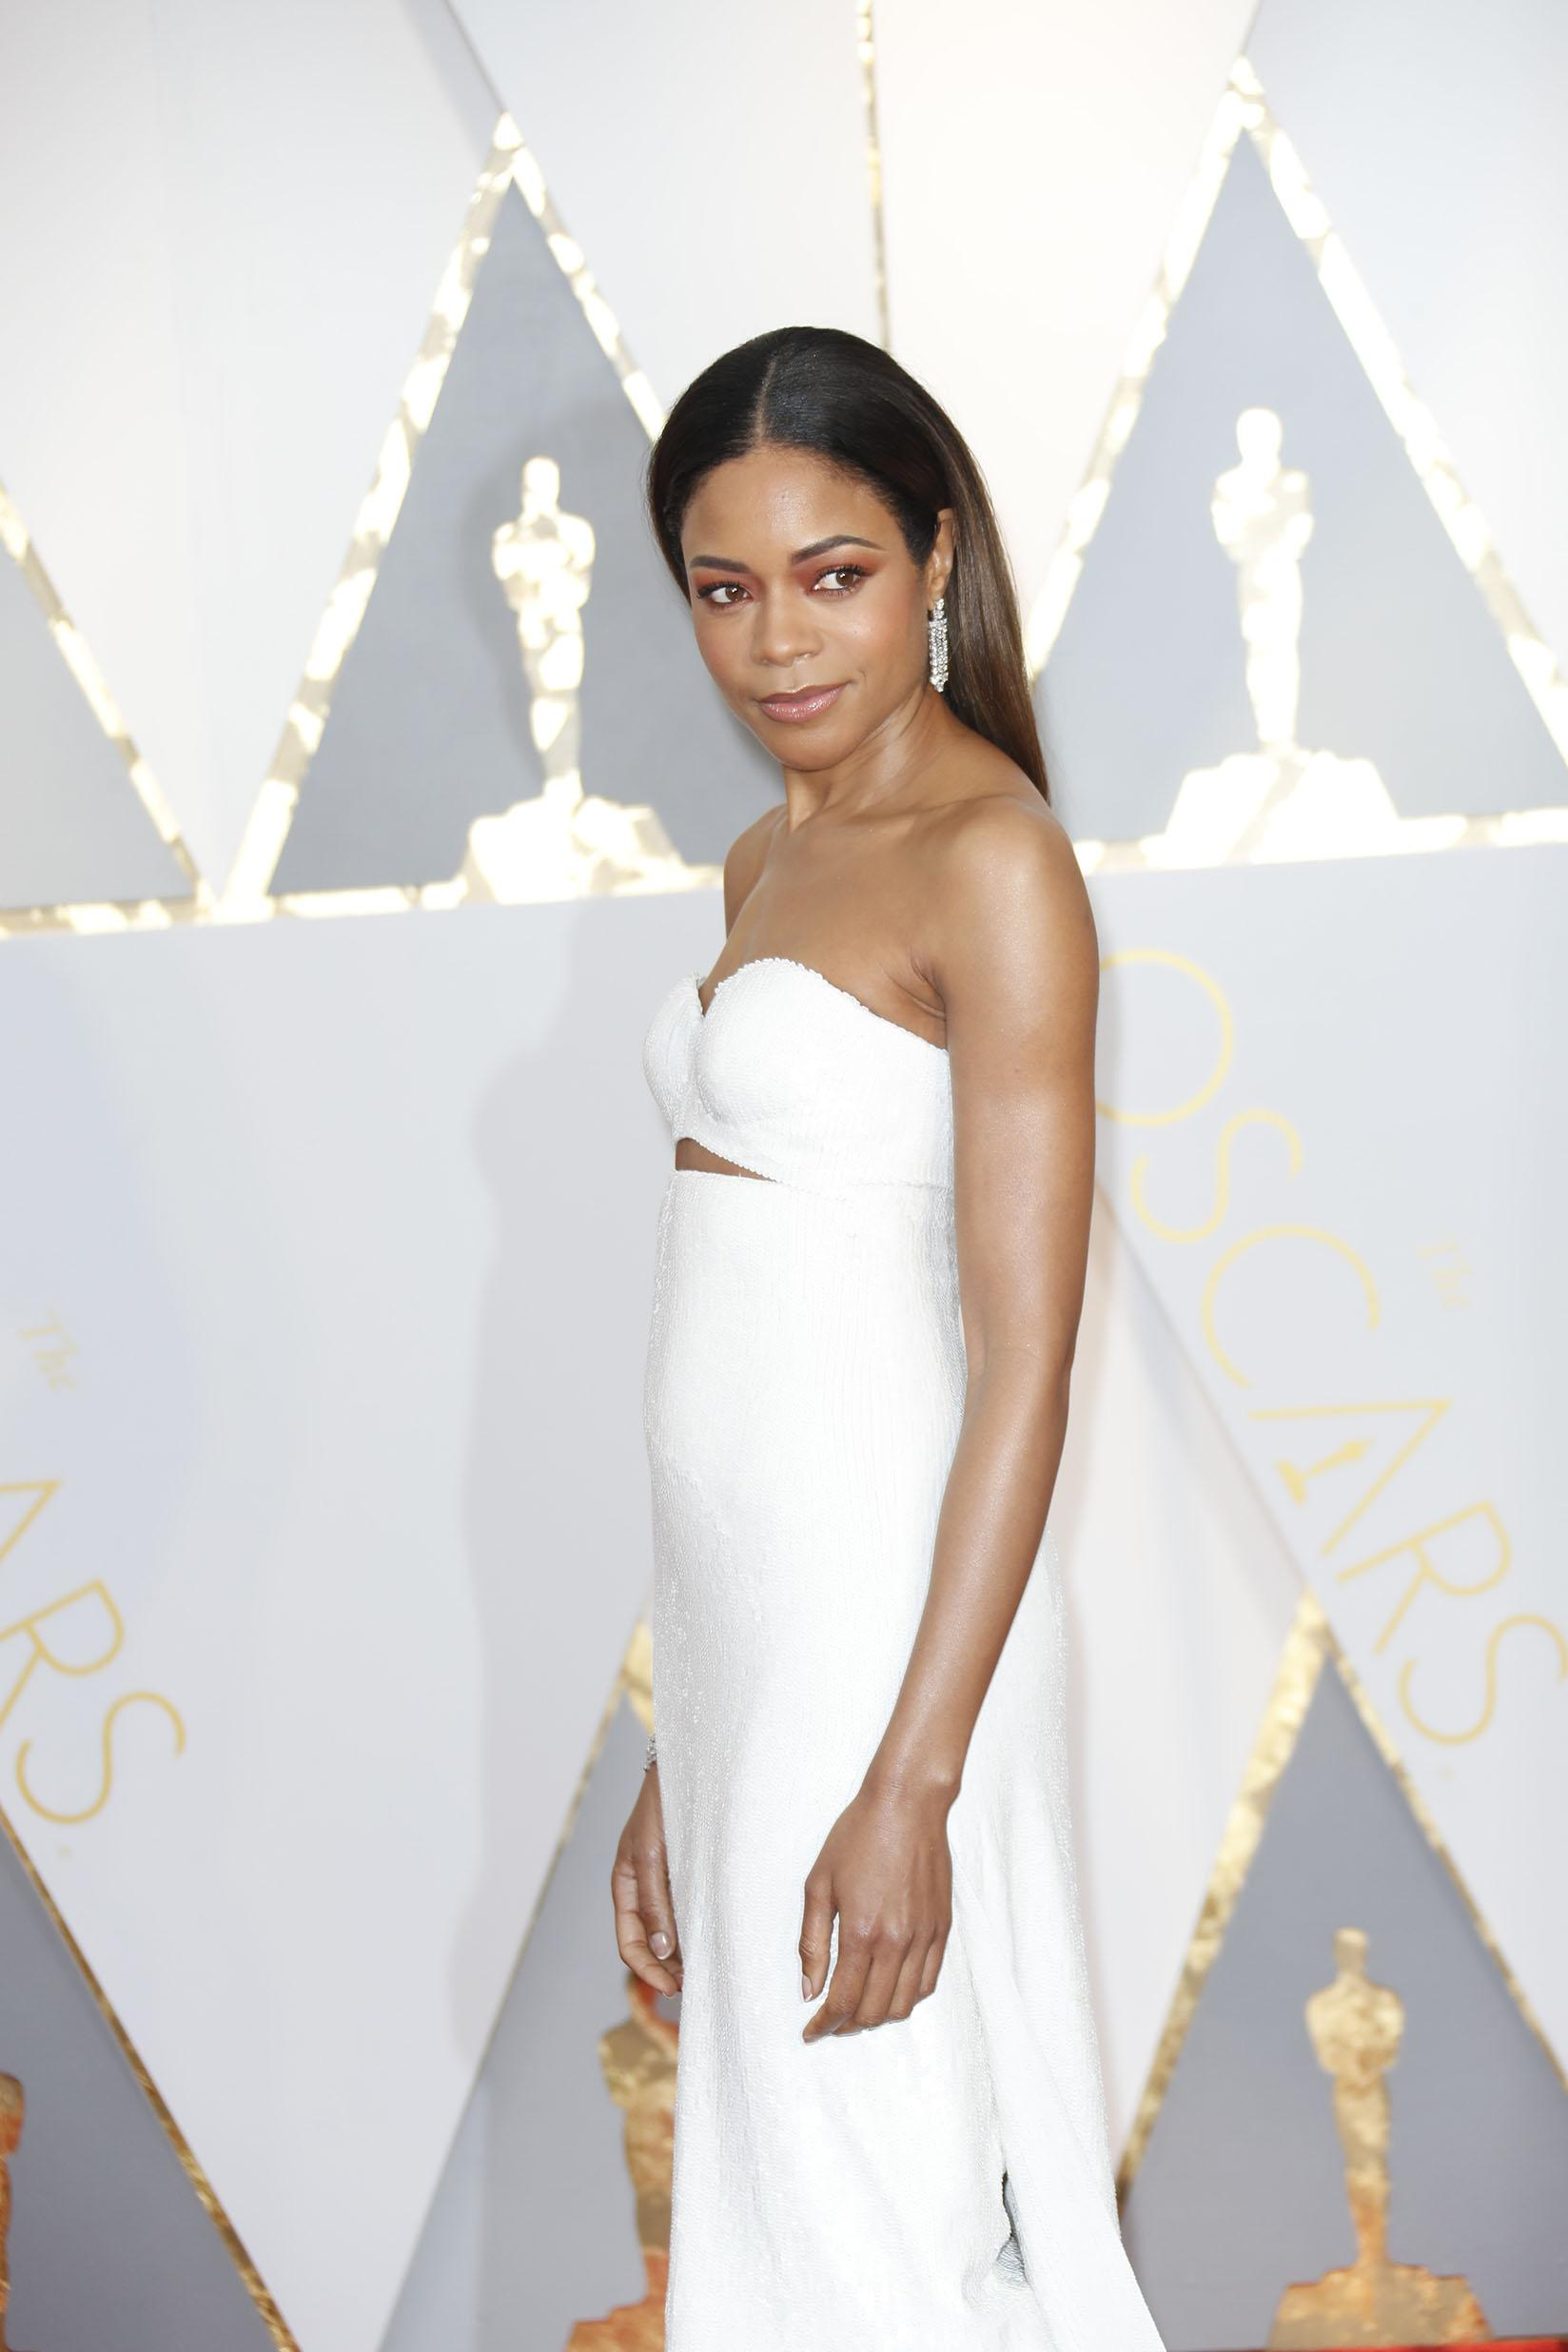 Naomie Harris arrives at the 89th Academy Awards on Sunday, Feb. 26, 2017, at the Dolby Theatre at Hollywood & Highland Center in Hollywood. (Jay L. Clendenin/Los Angeles Times/TNS)